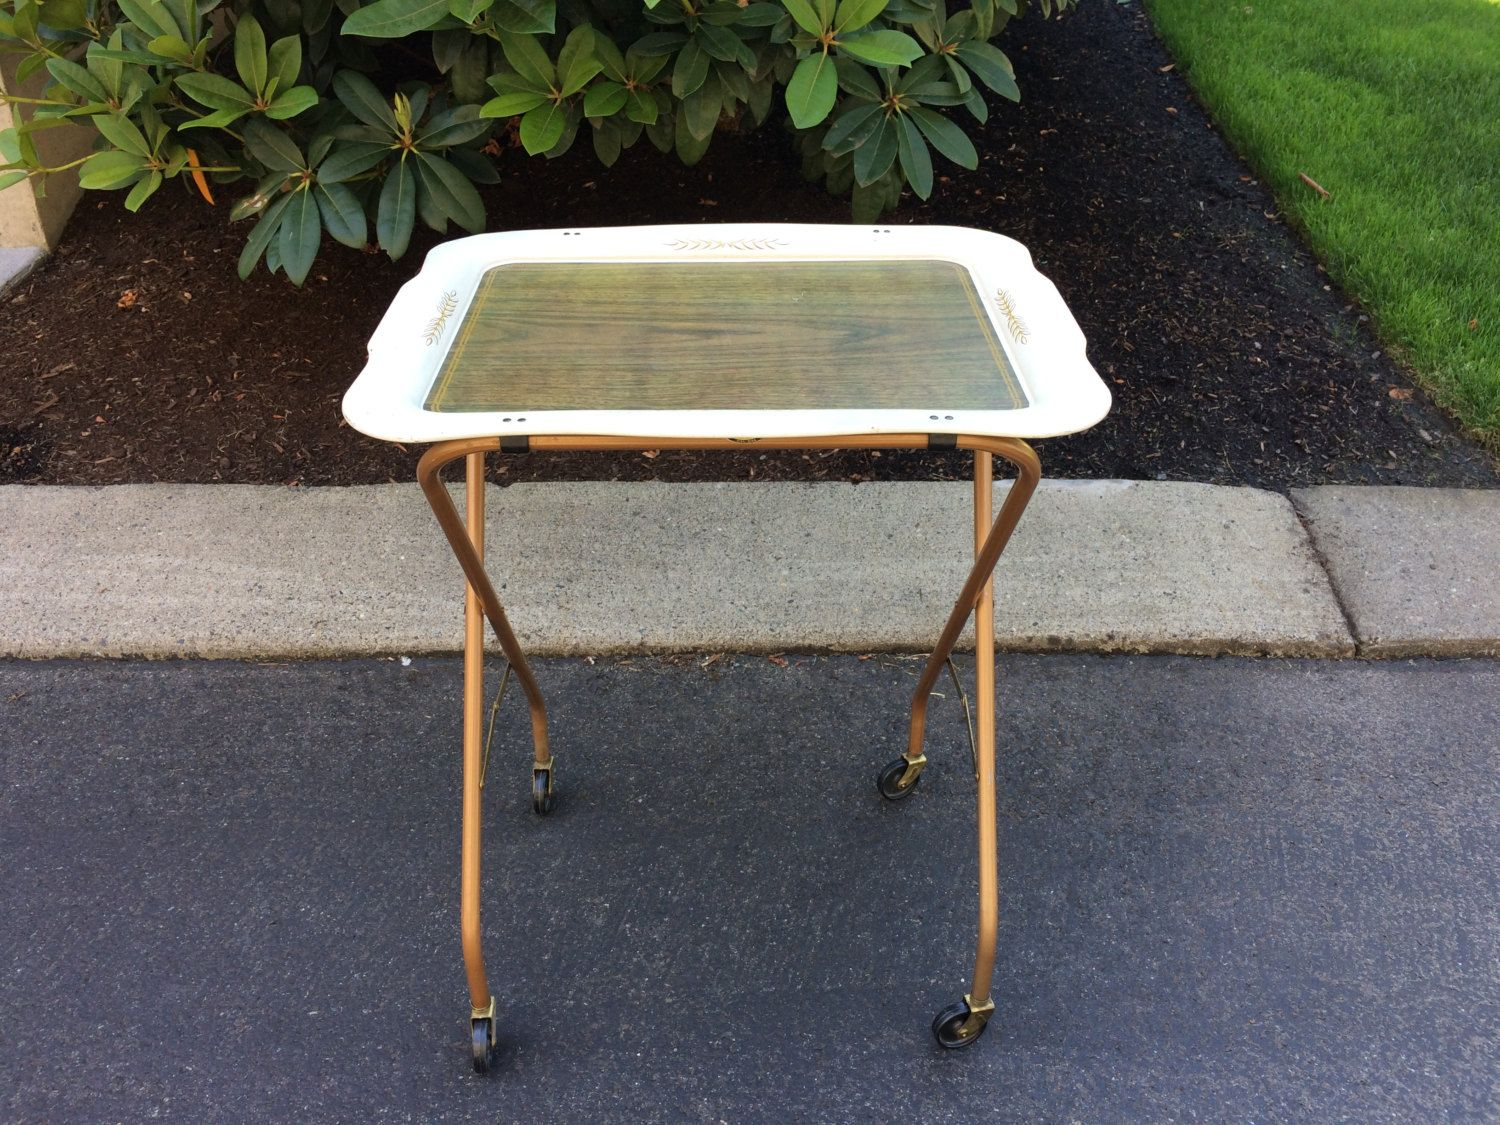 Vintage TV Tray, Faux Wood Pattern, Vintage Cal Dak, TV Tray On Wheels, Dinner  Tray, Foldable Tray, Computer Tray, Metal Tray, Cal Dak